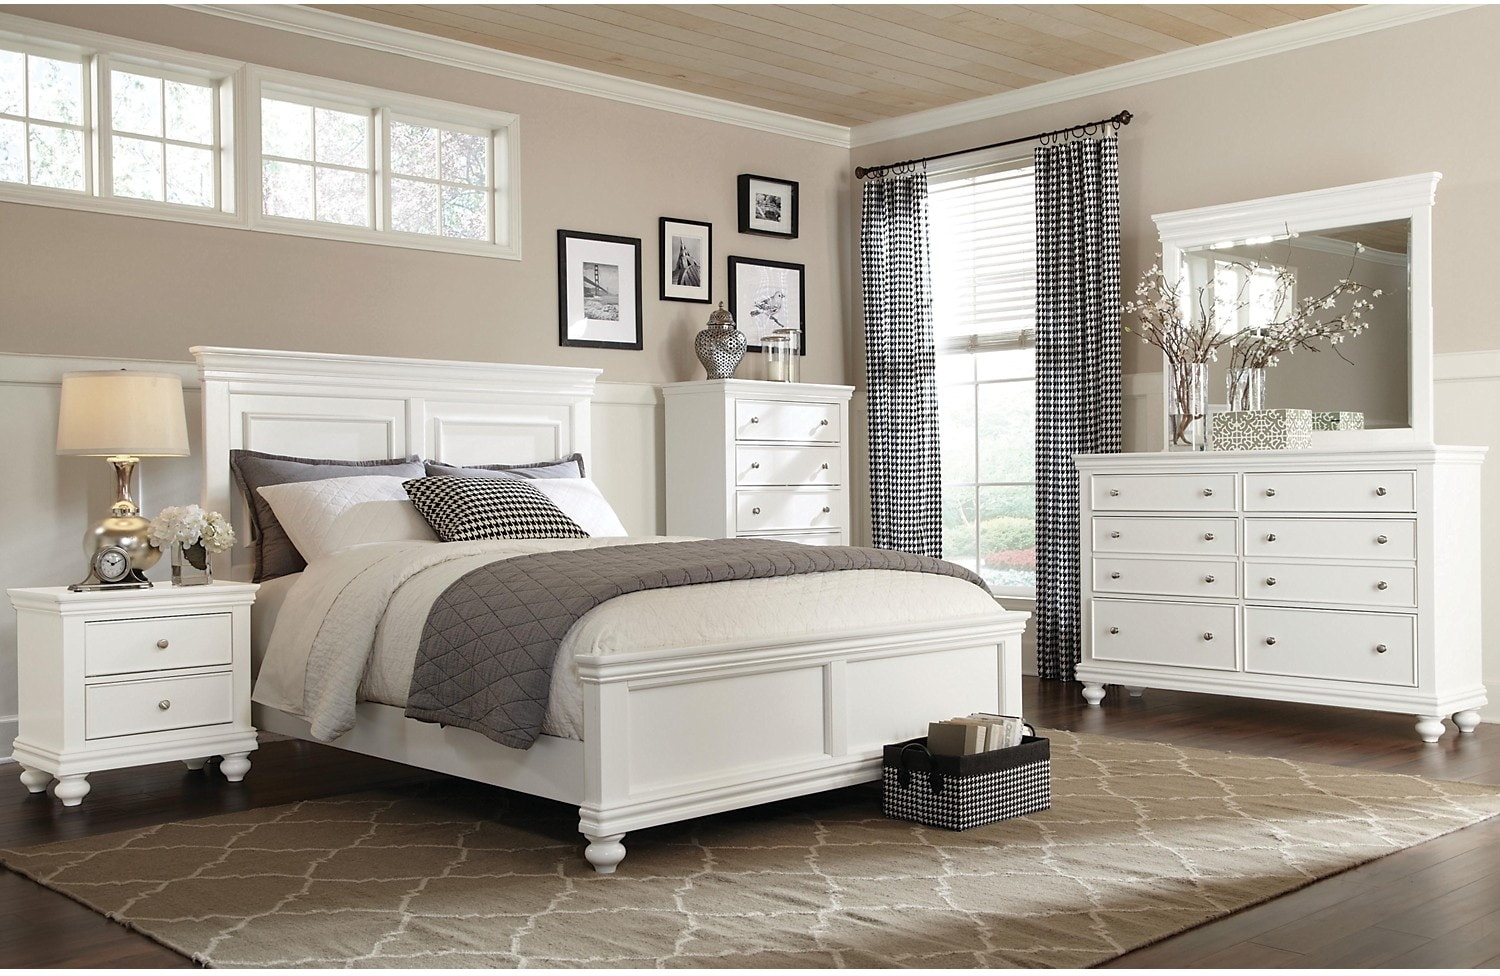 Bridgeport 8-Piece King Bedroom Set – White | The Brick